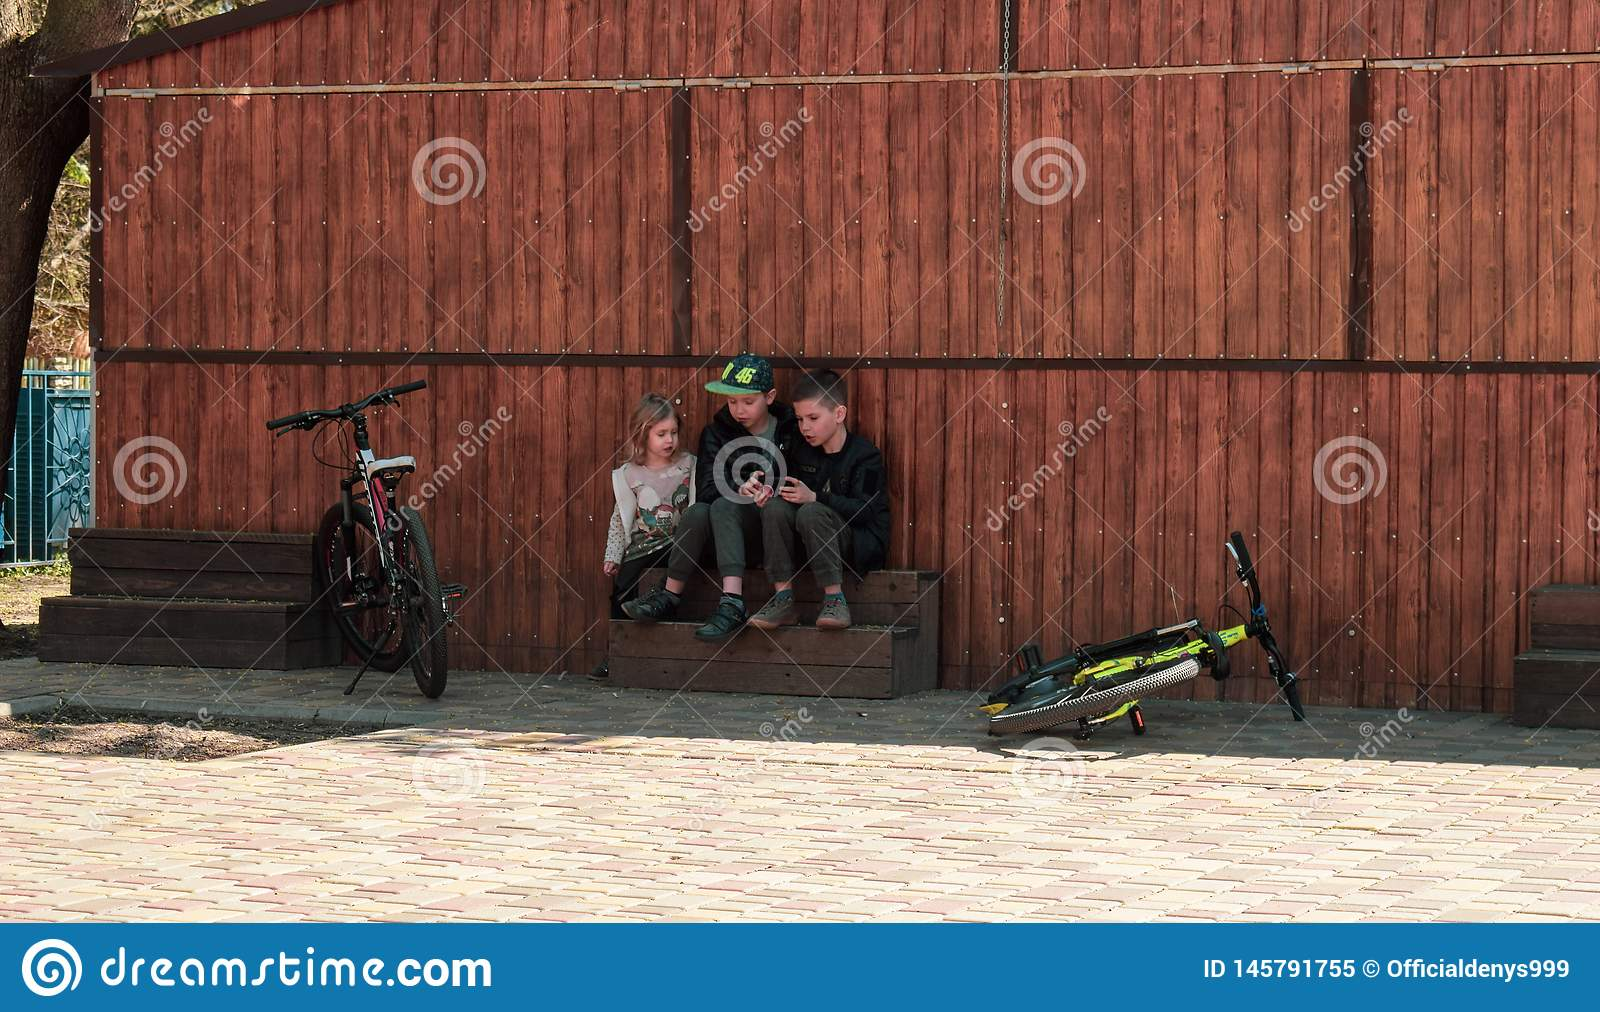 Ukraine, Kremenchug - April, 2019: Children are using a smartphones instead of riding bicycles